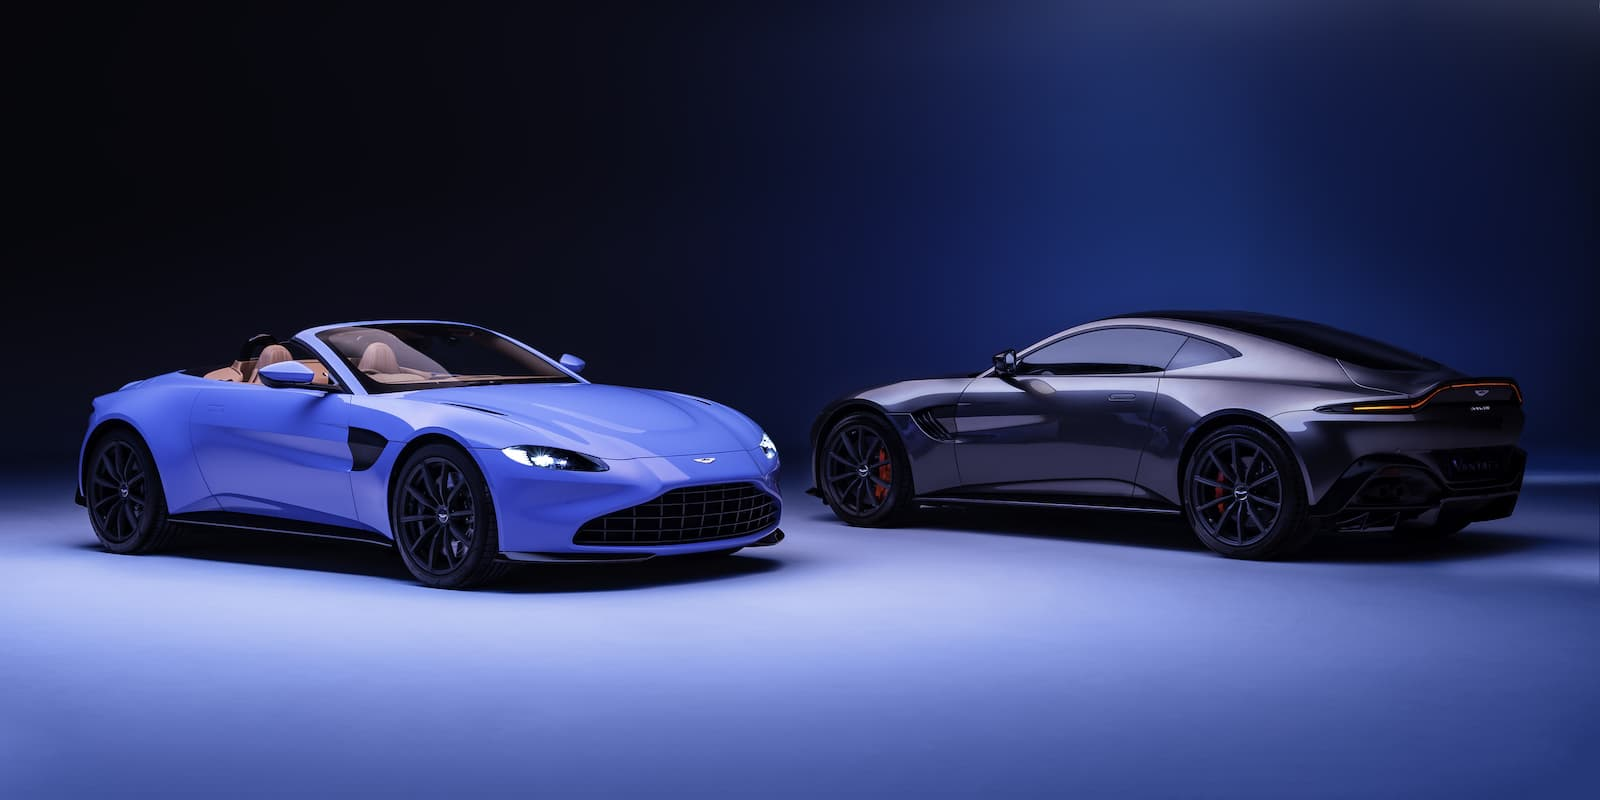 2020 Aston Martin Vantage Roadster and coupe